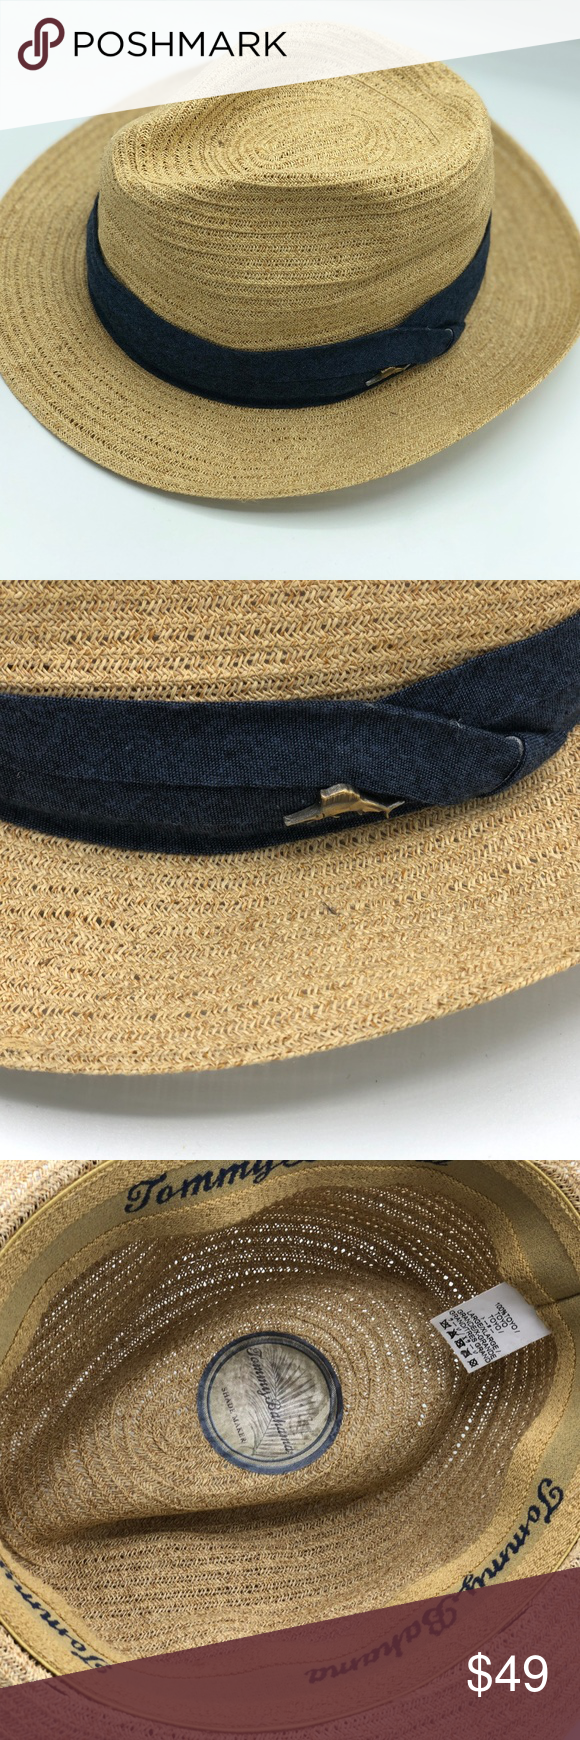 53ca19e5ae9f7 Tommy Bahama Men s Straw Hat NWOT This hat is brand new. However